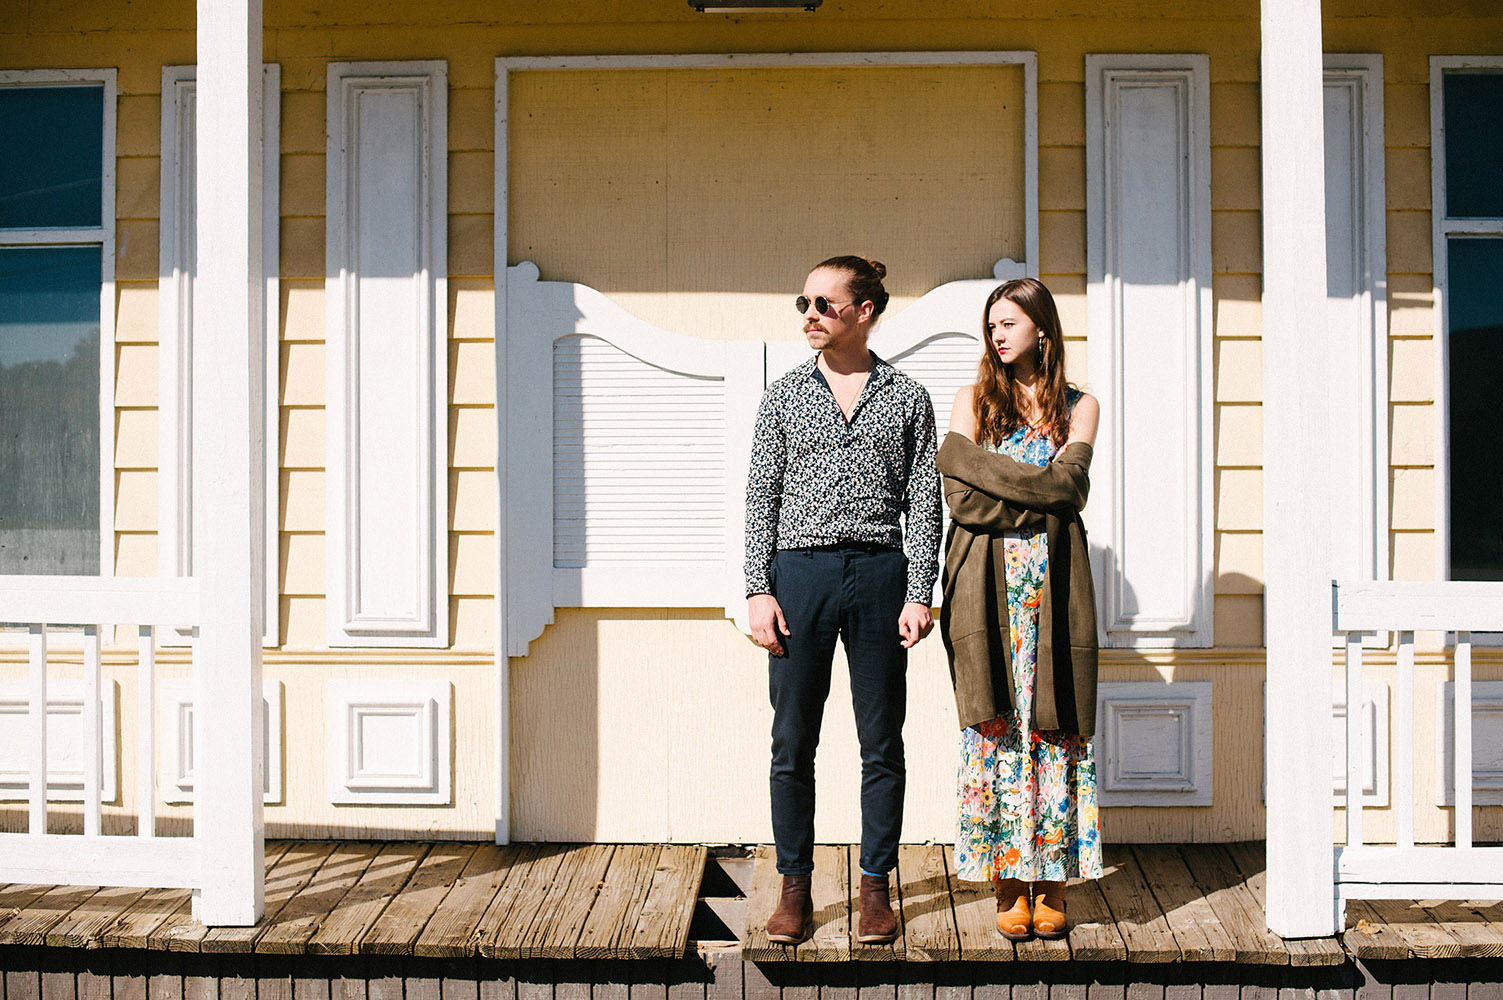 Guy with man bun, round sunglasses and blue print shirt and girl with long brown hair, long floral print dress and cowboy boots in front of yellow western style building